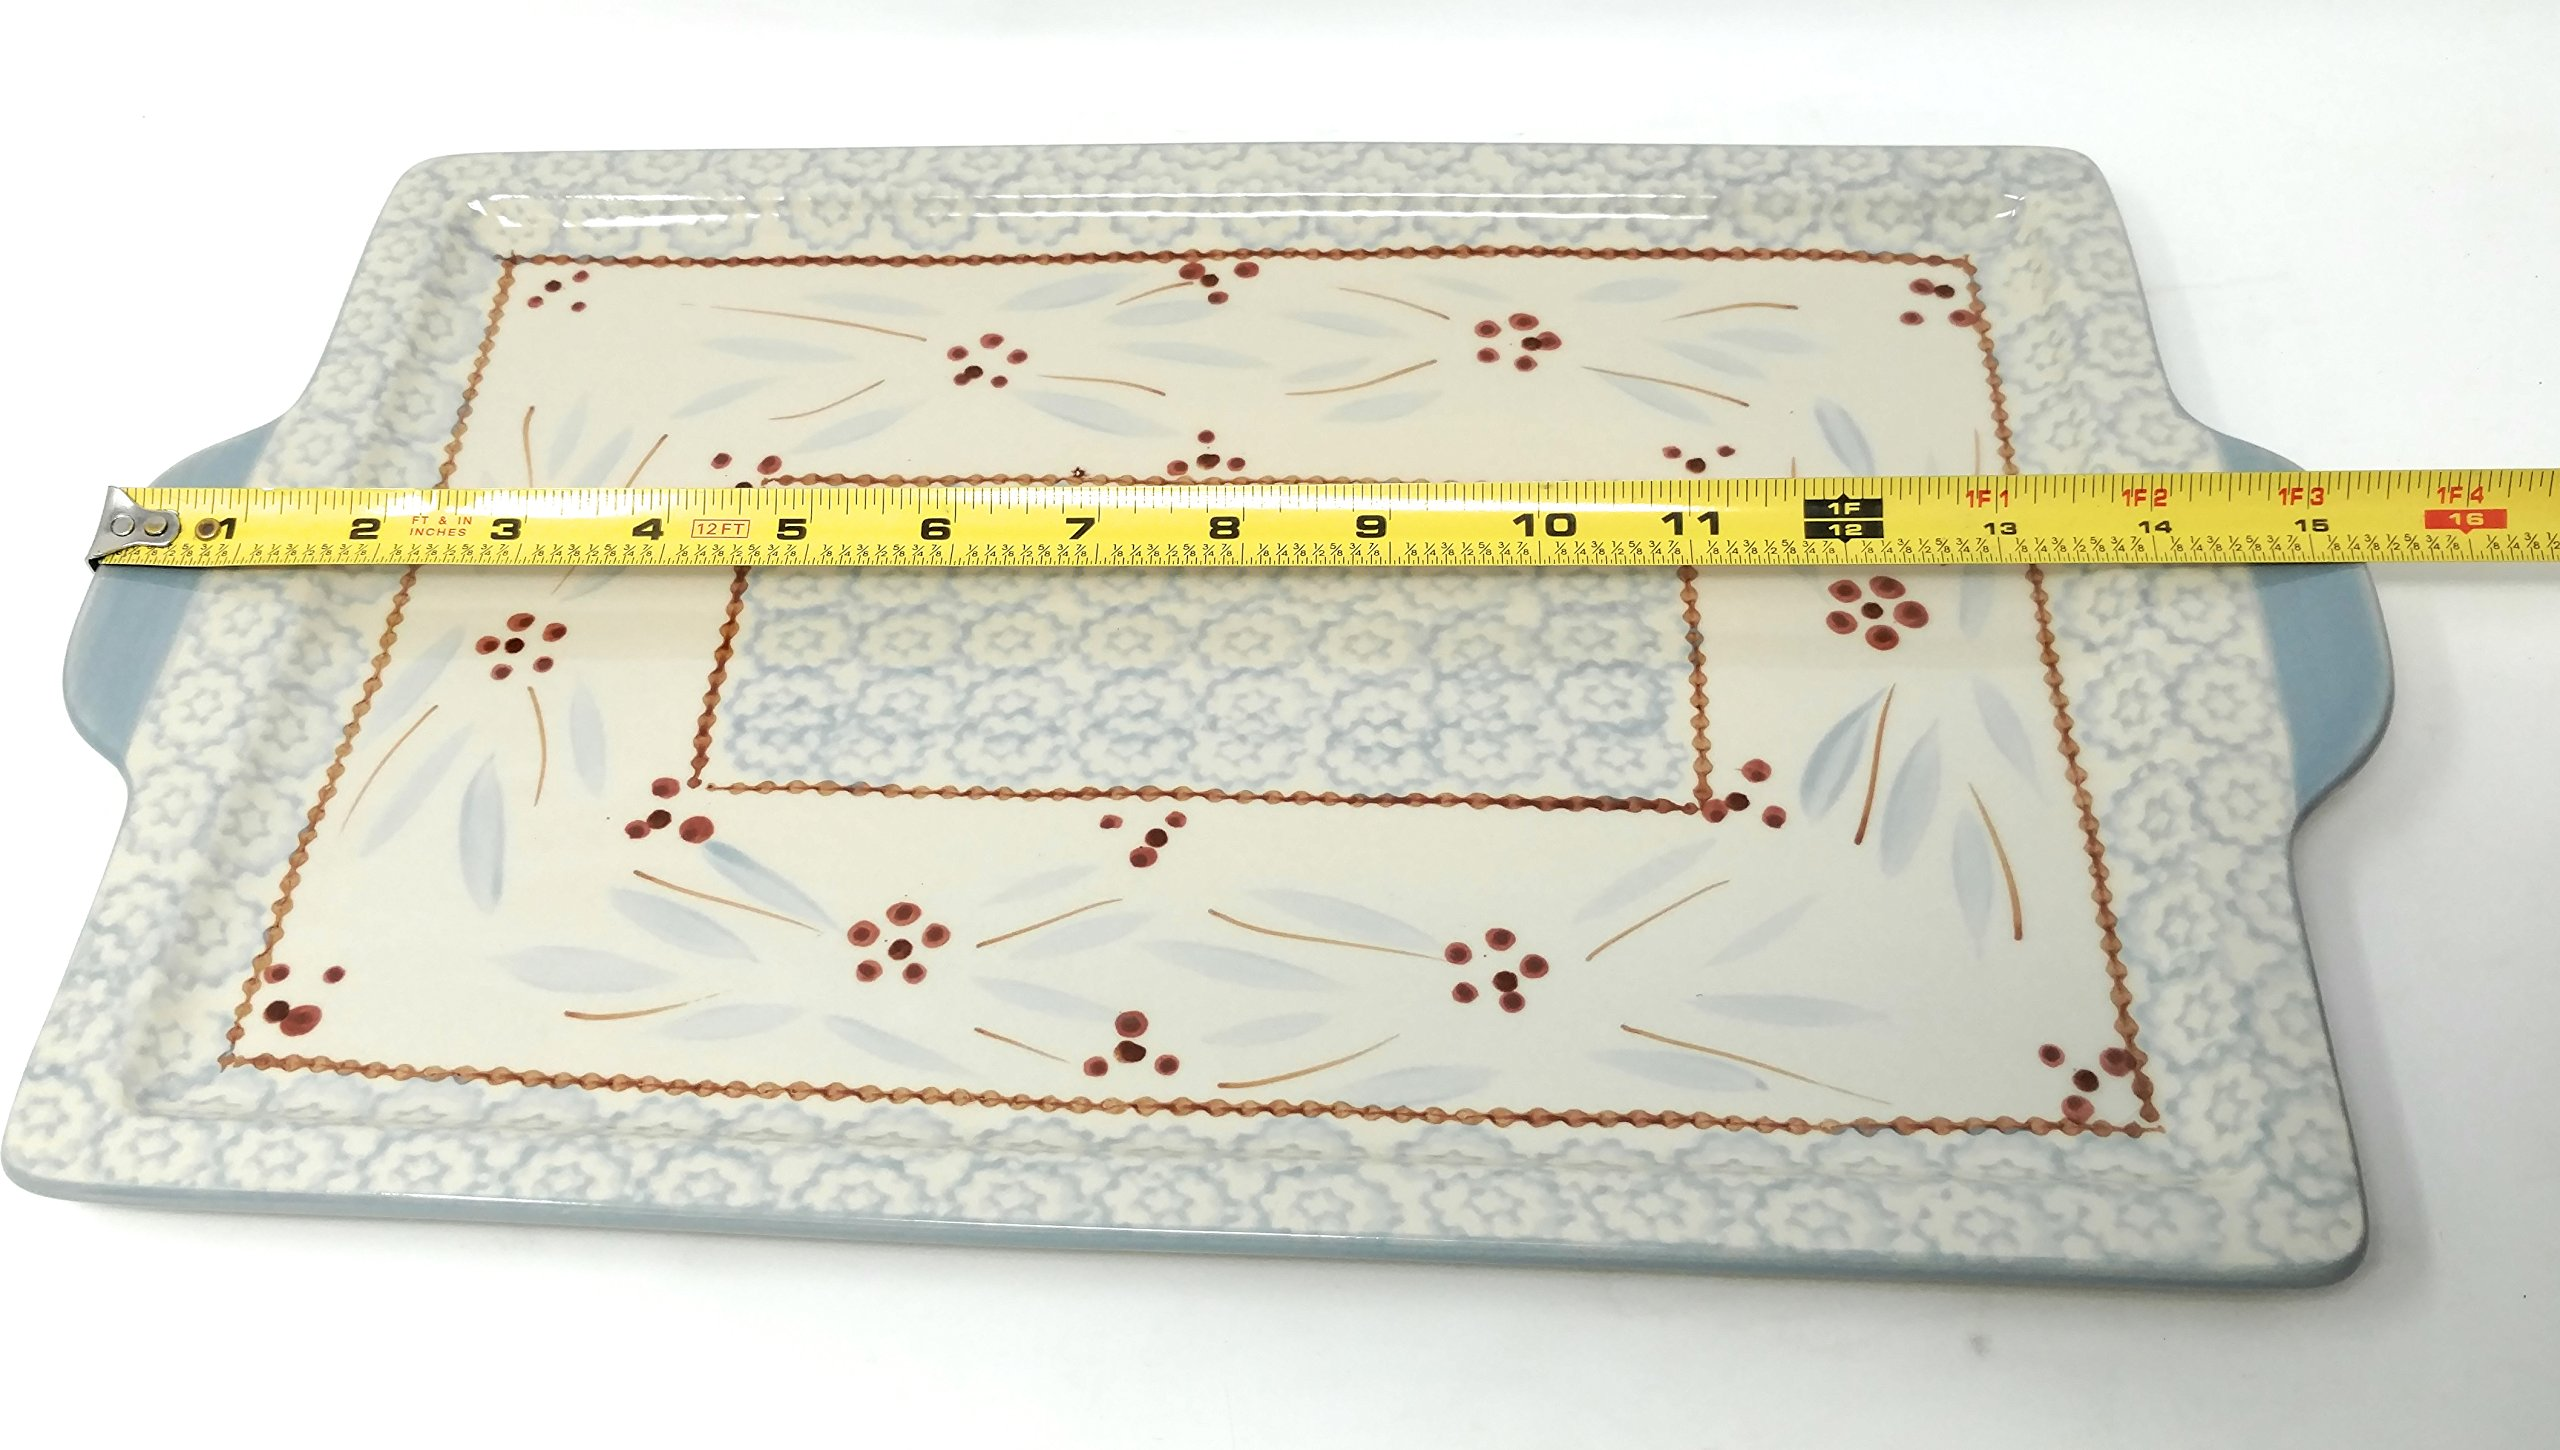 Temp-tations 13''x9'' Cookie Sheet, Platter, Tray or Replacement Lid-It (Old World Fireworkfetti) by Temptations (Image #3)